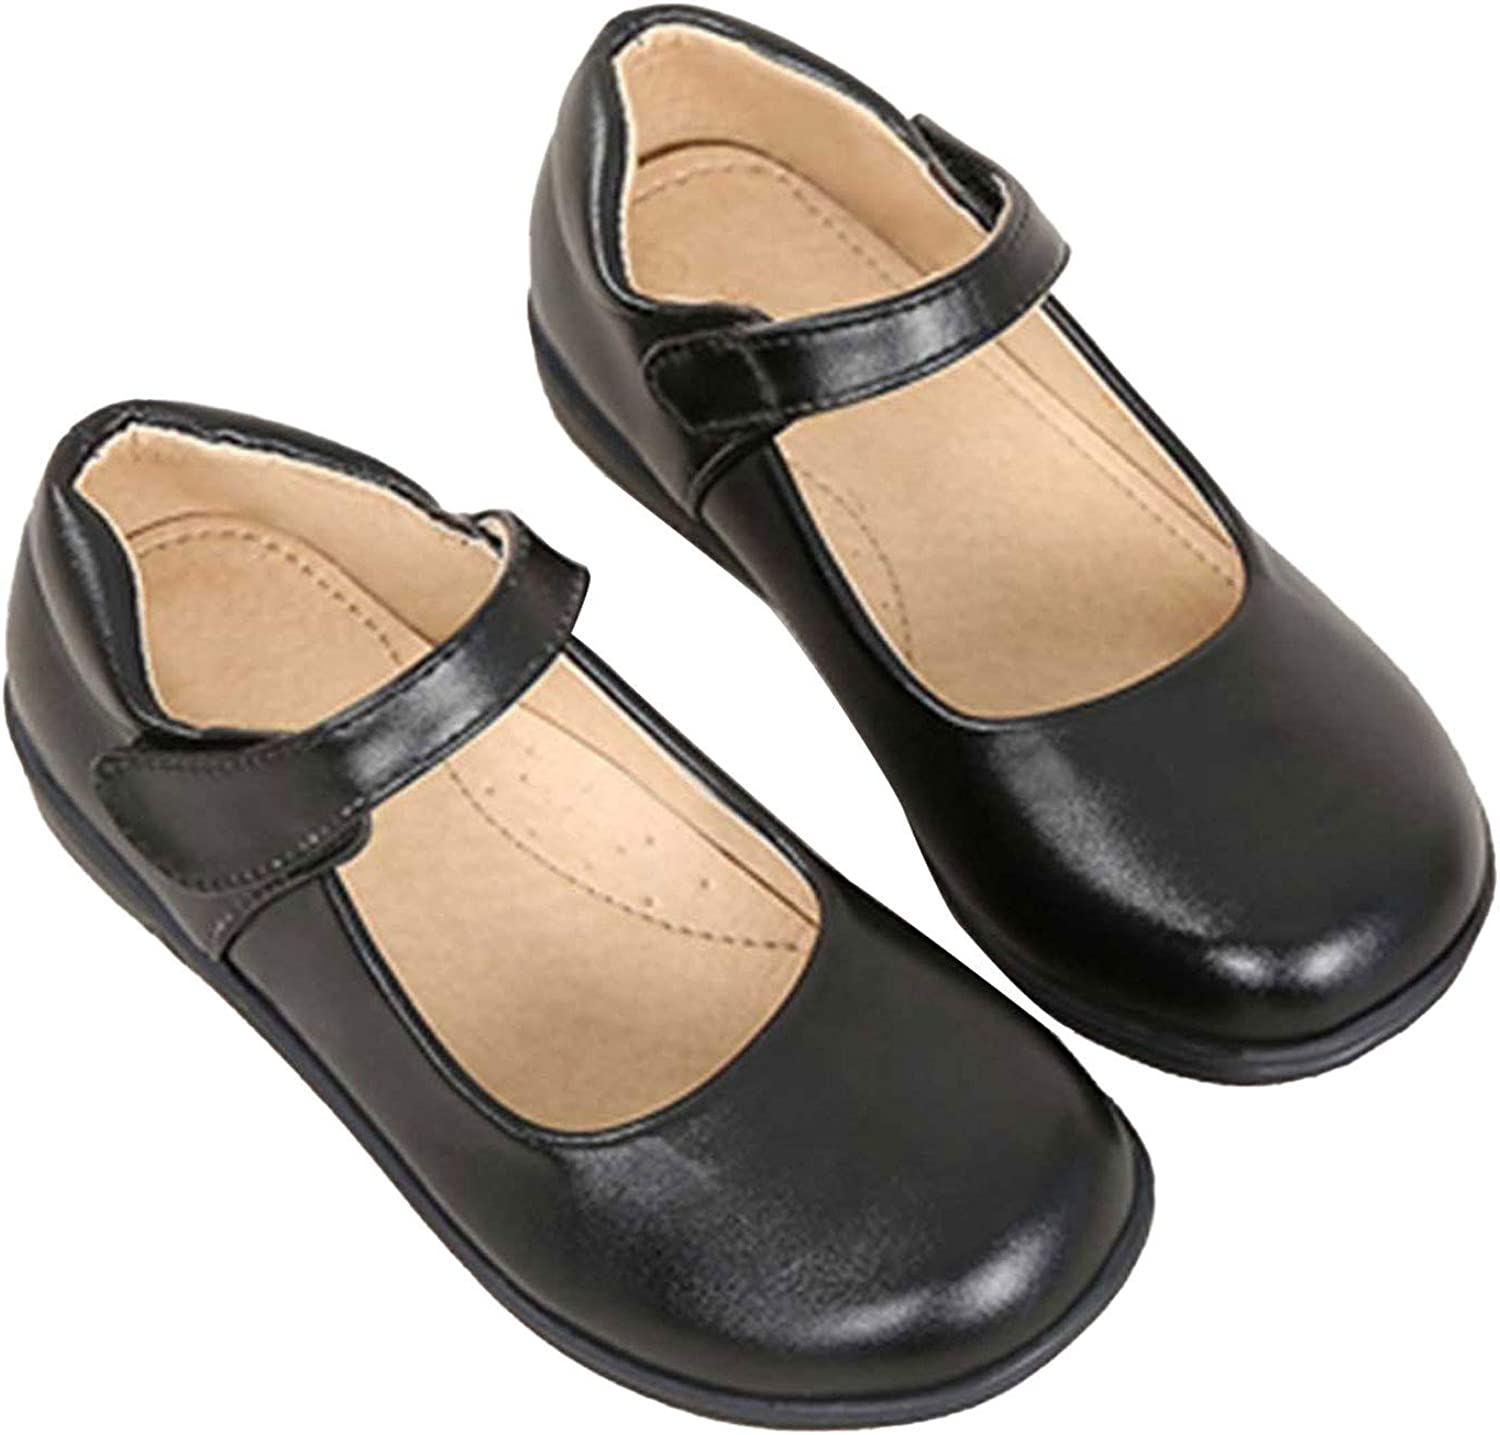 easyforever Kids Big Girls PU Leather Shoes Round Toe Rubber Sole Shoes for Dance Party Dress Performance